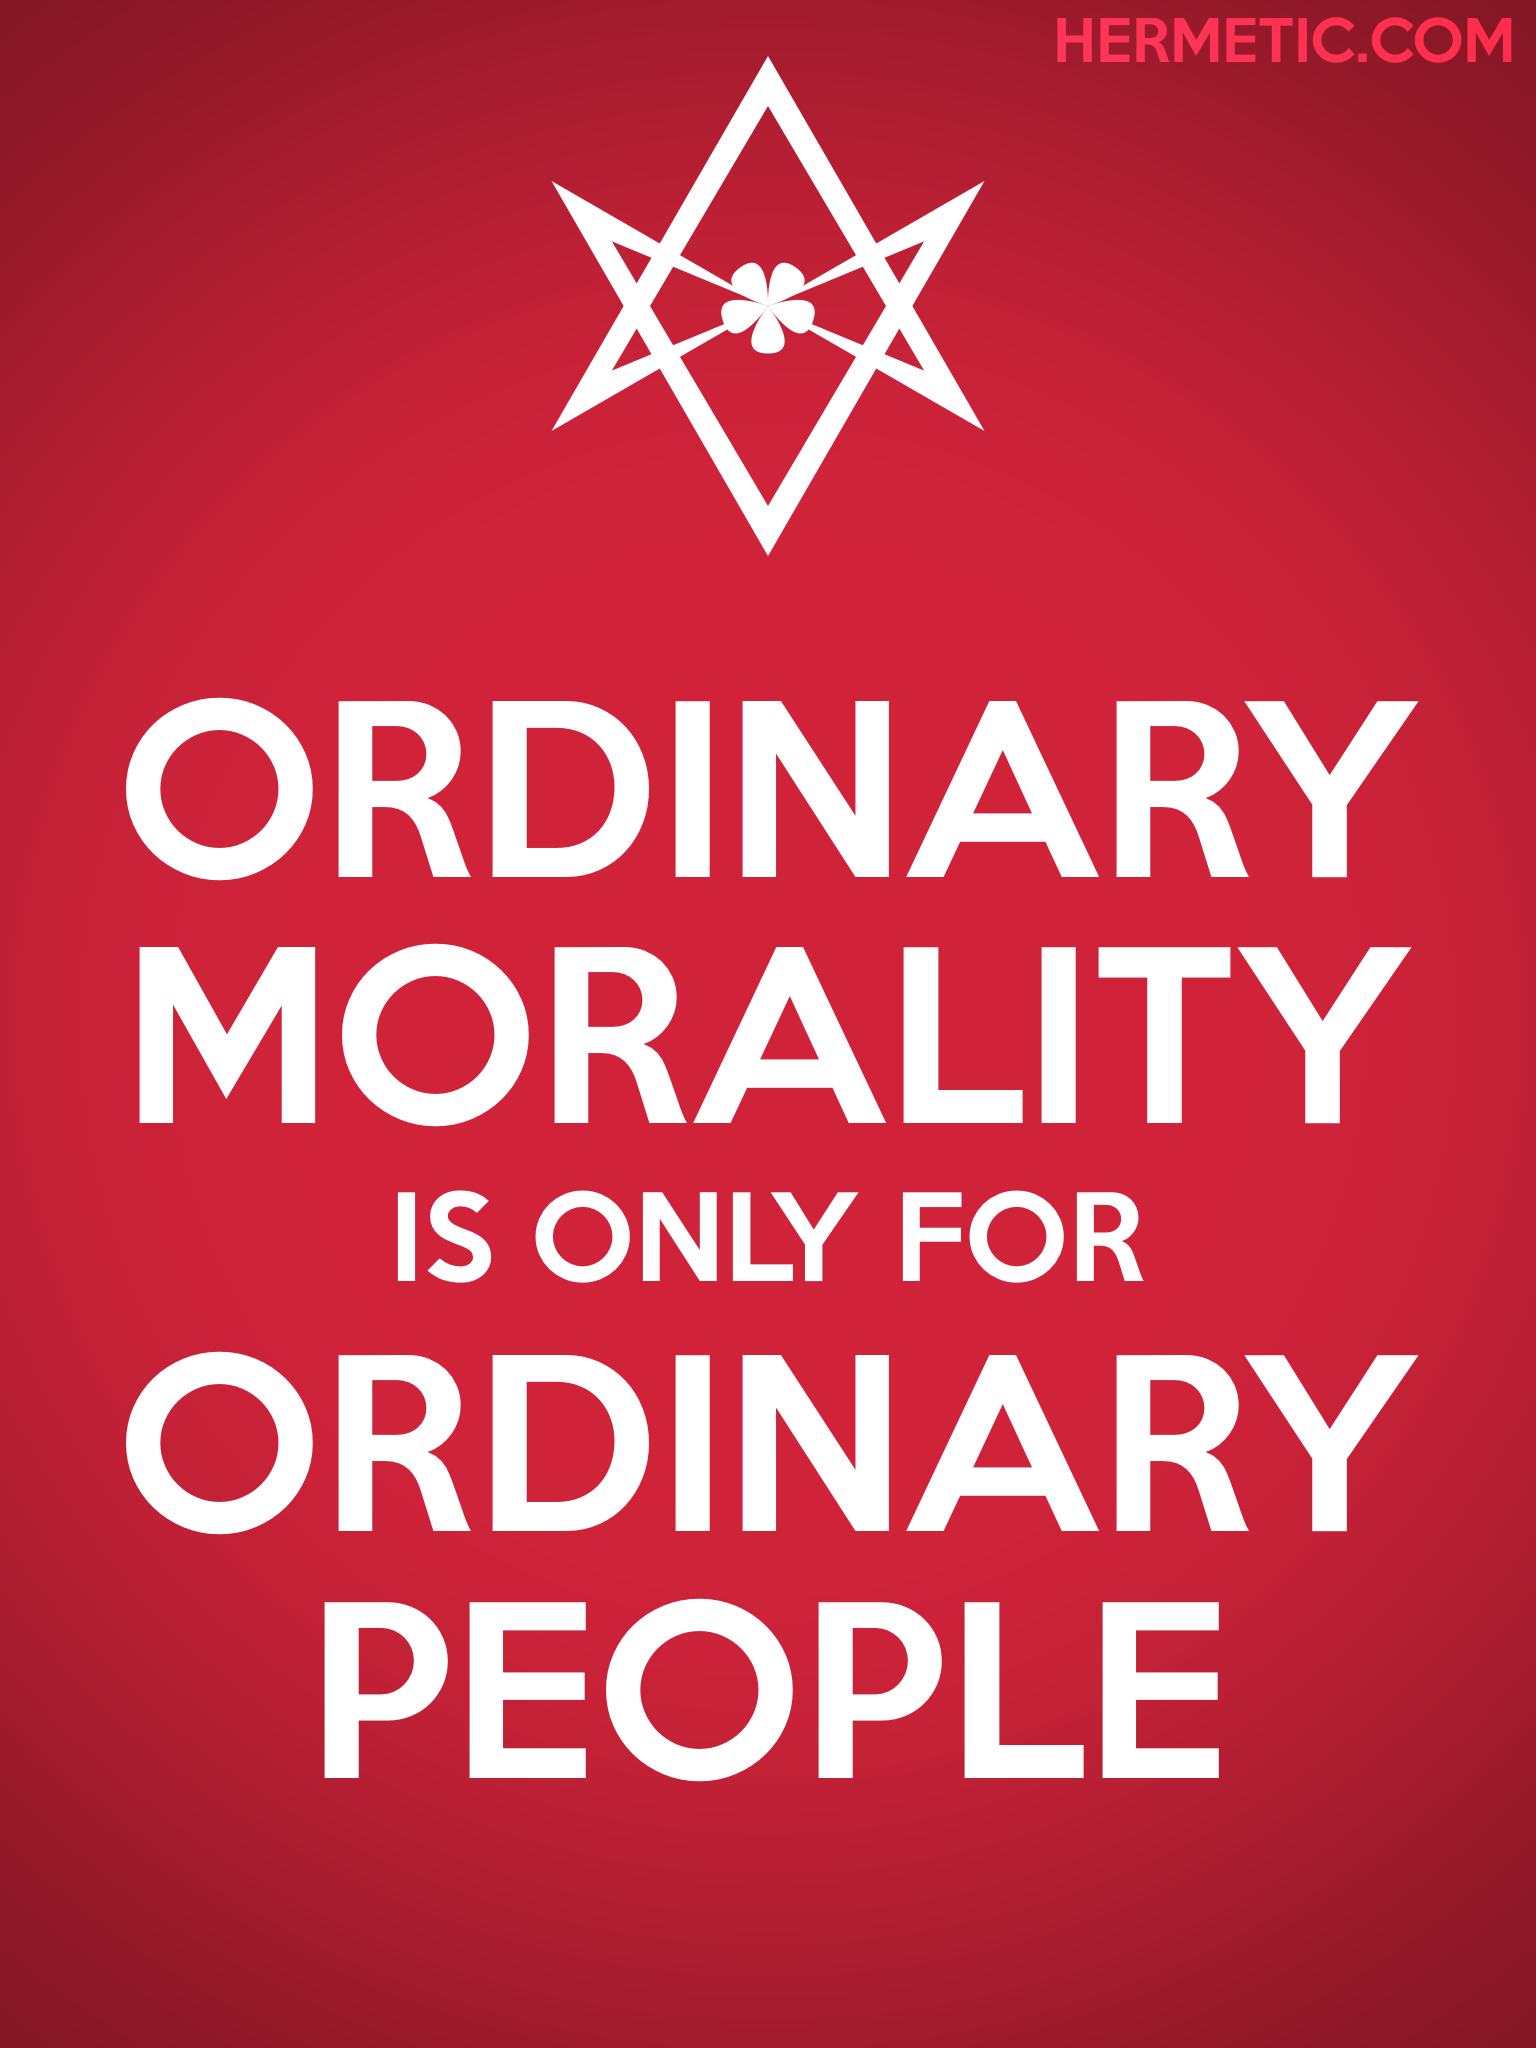 Unicursal ORDINARY MORALITY Propaganda Poster from Hermetic Library Ministry of Information